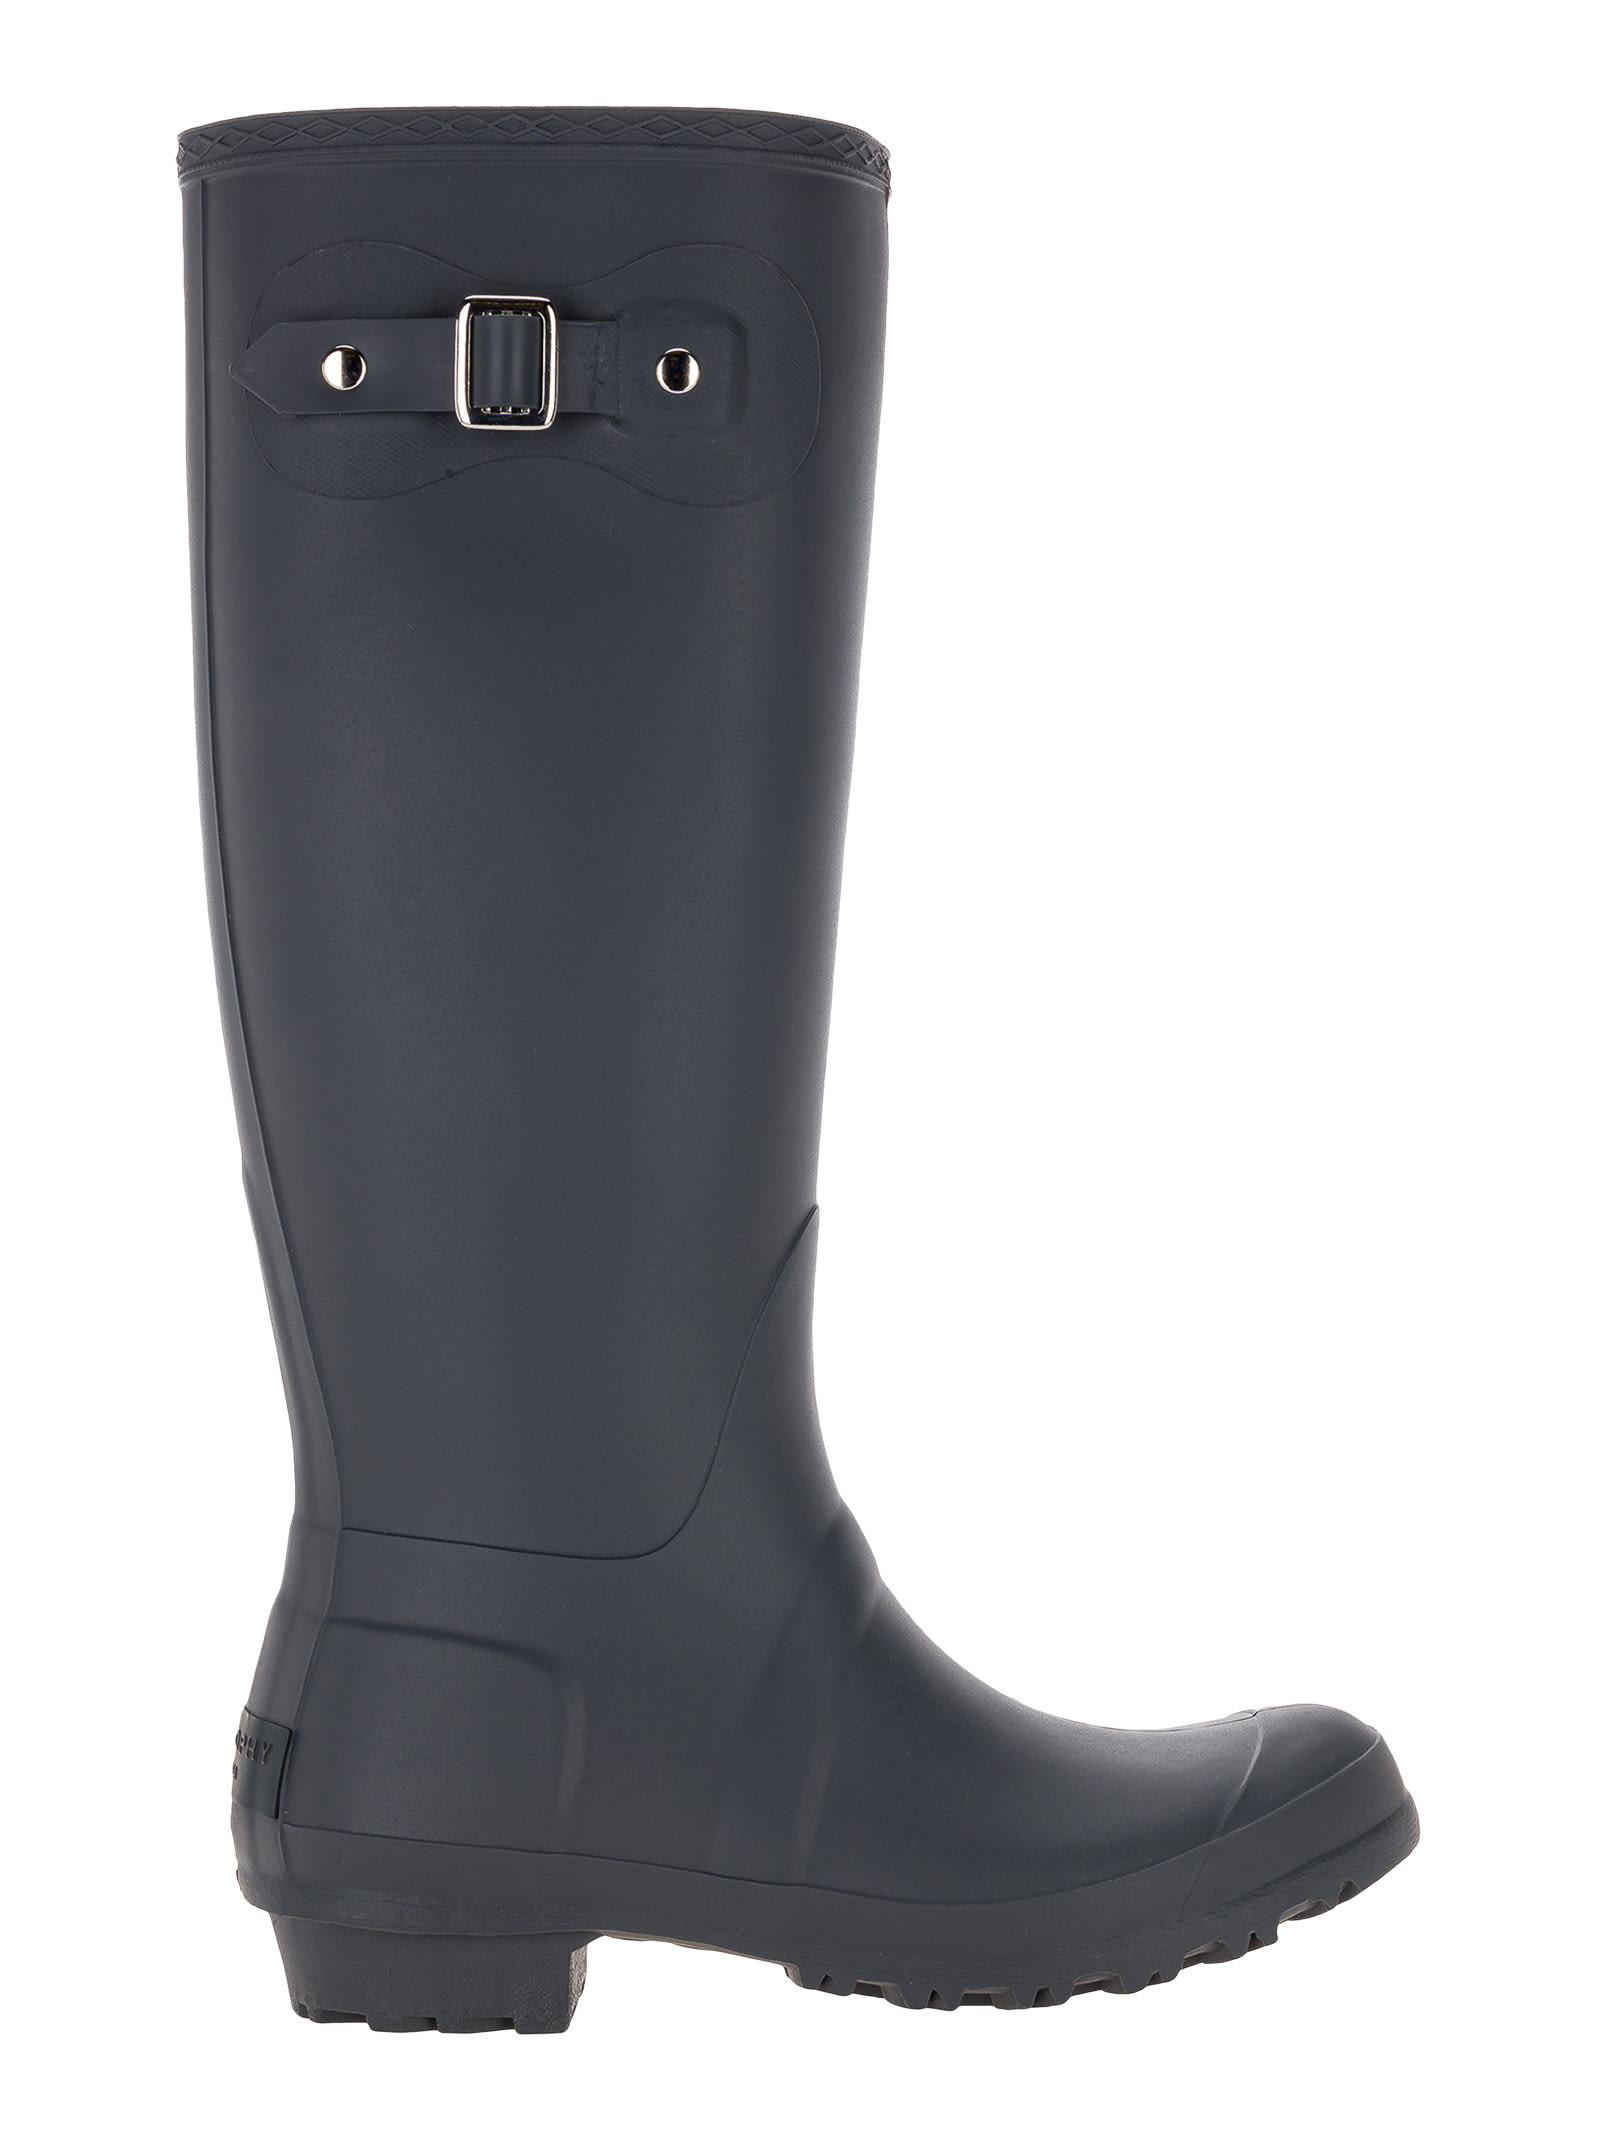 Philosophy Rubber Boots